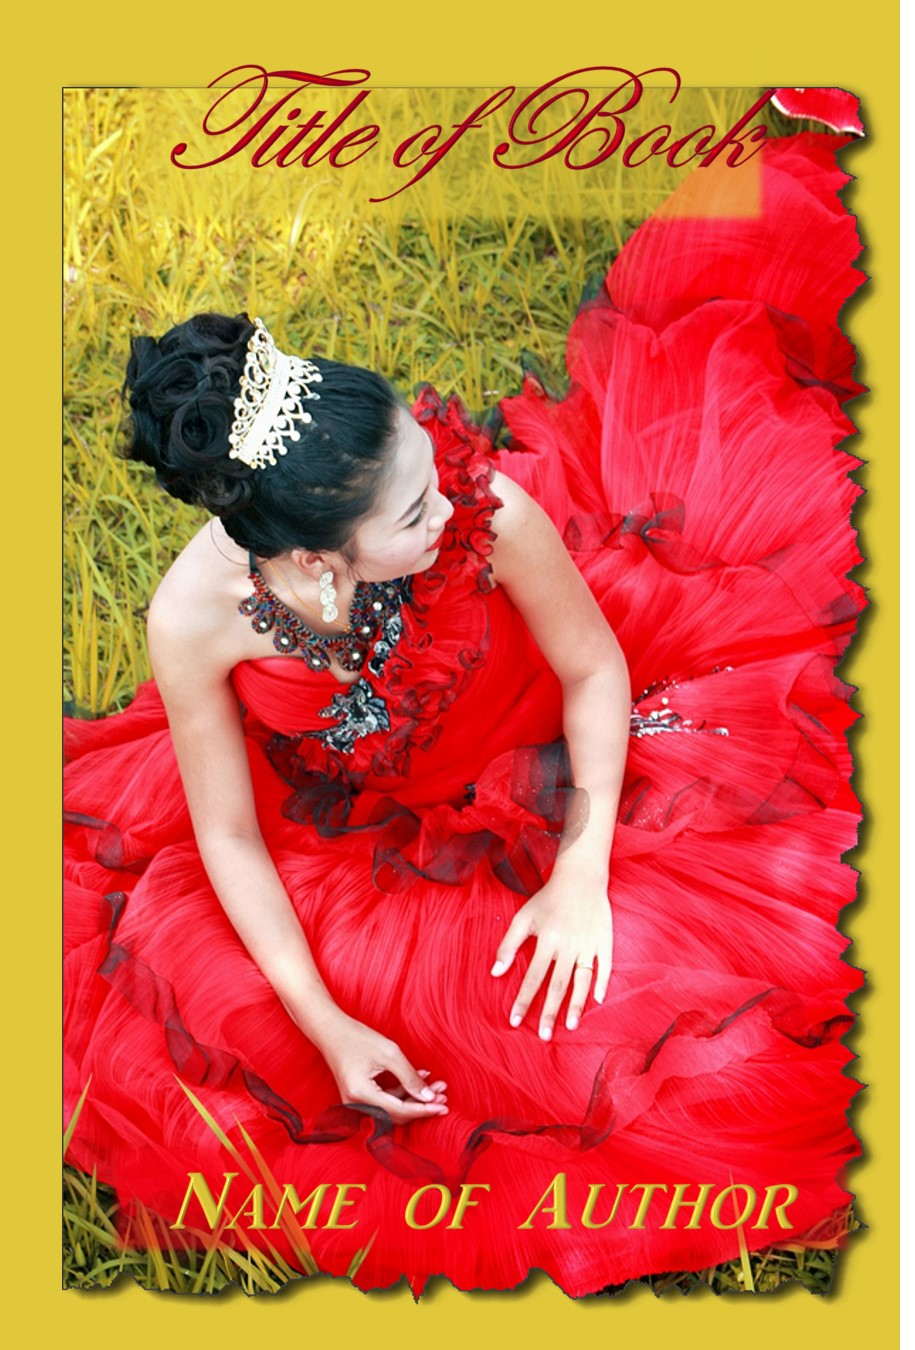 Group II. Woman, Red Gown, Romance, Holiday, Wedding, Asia